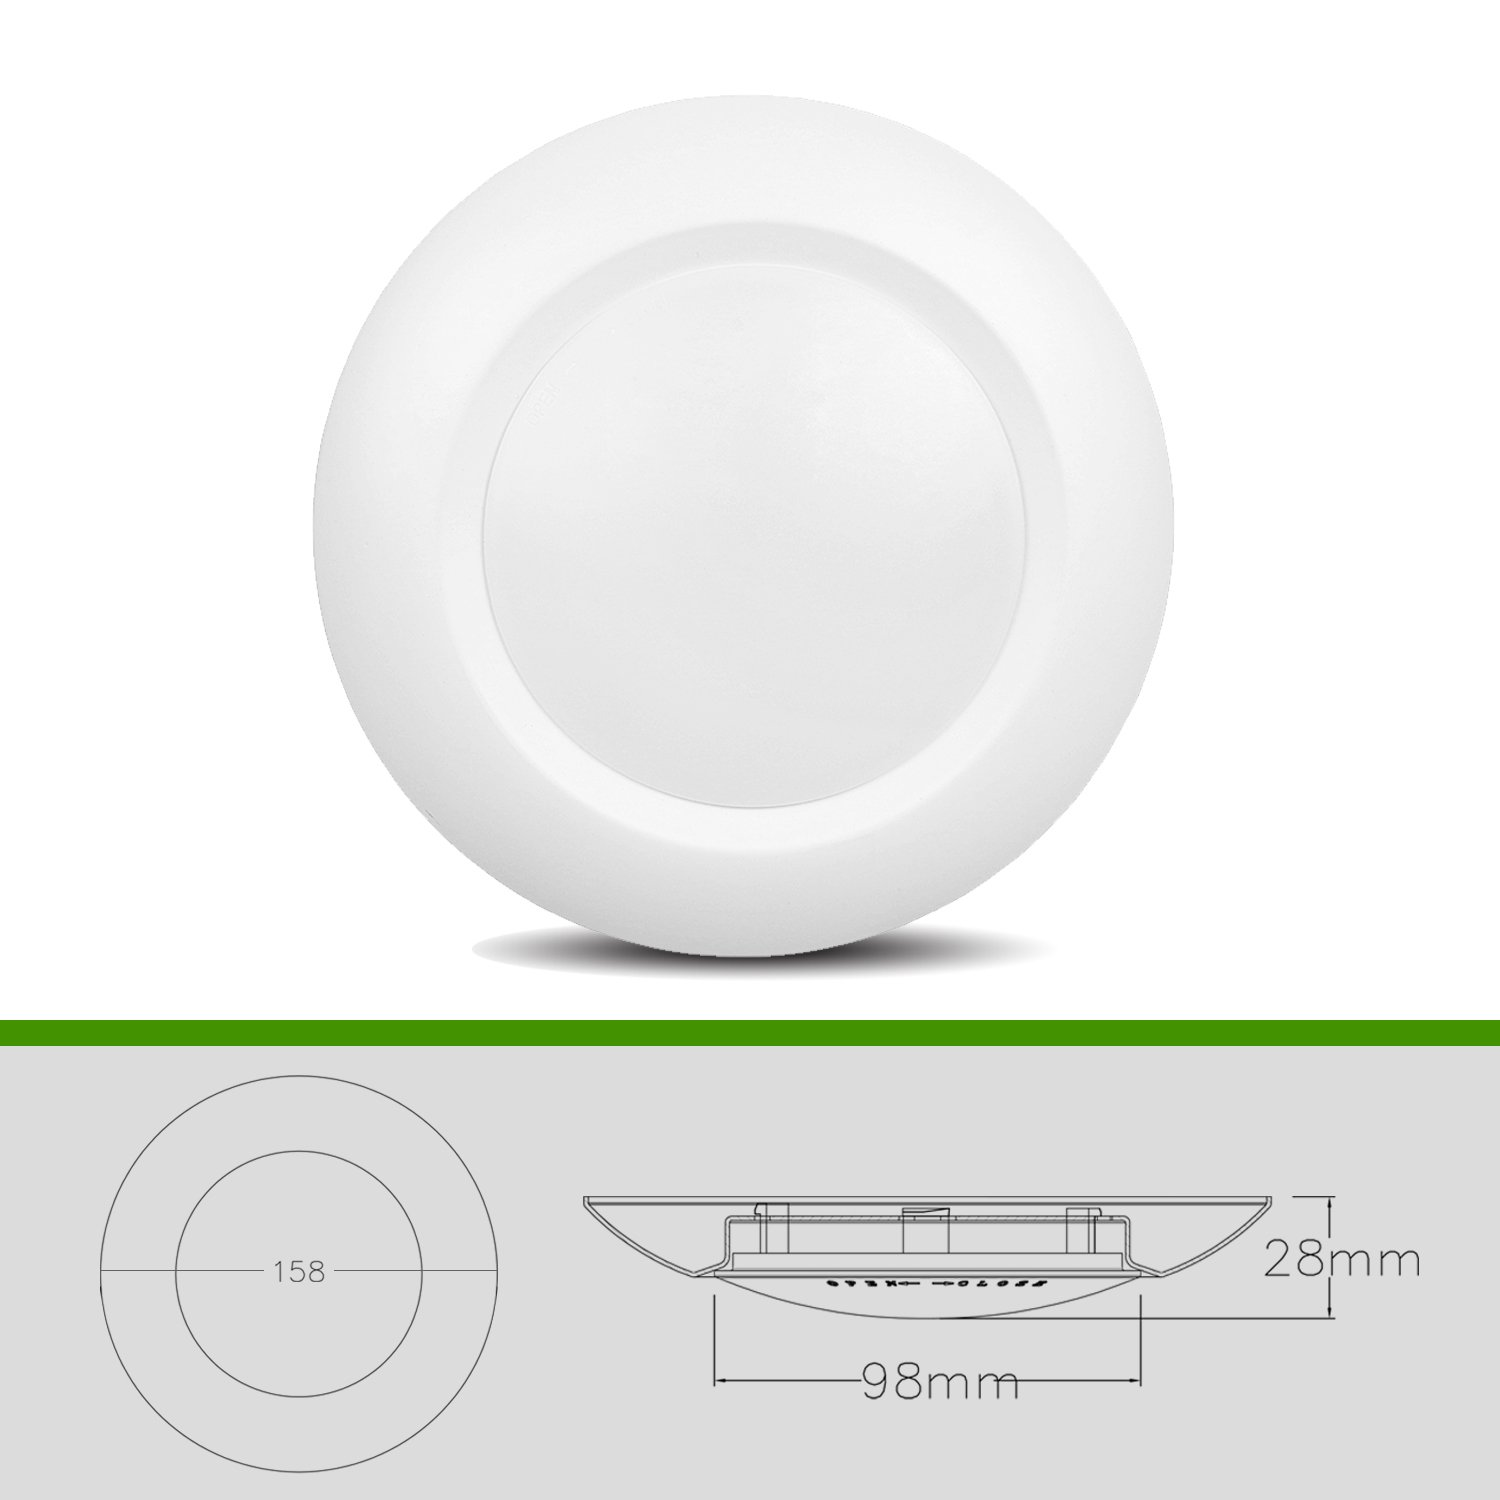 JULLISON 6 Packs 4 Inch LED Low Profile Recessed & Surface Mount Disk Light, Round, 10W, 600 Lumens, 3000K Warm White, CRI80, DOB Design, Dimmable, Energy Star, ETL Listed, White ... by JULLISON (Image #4)